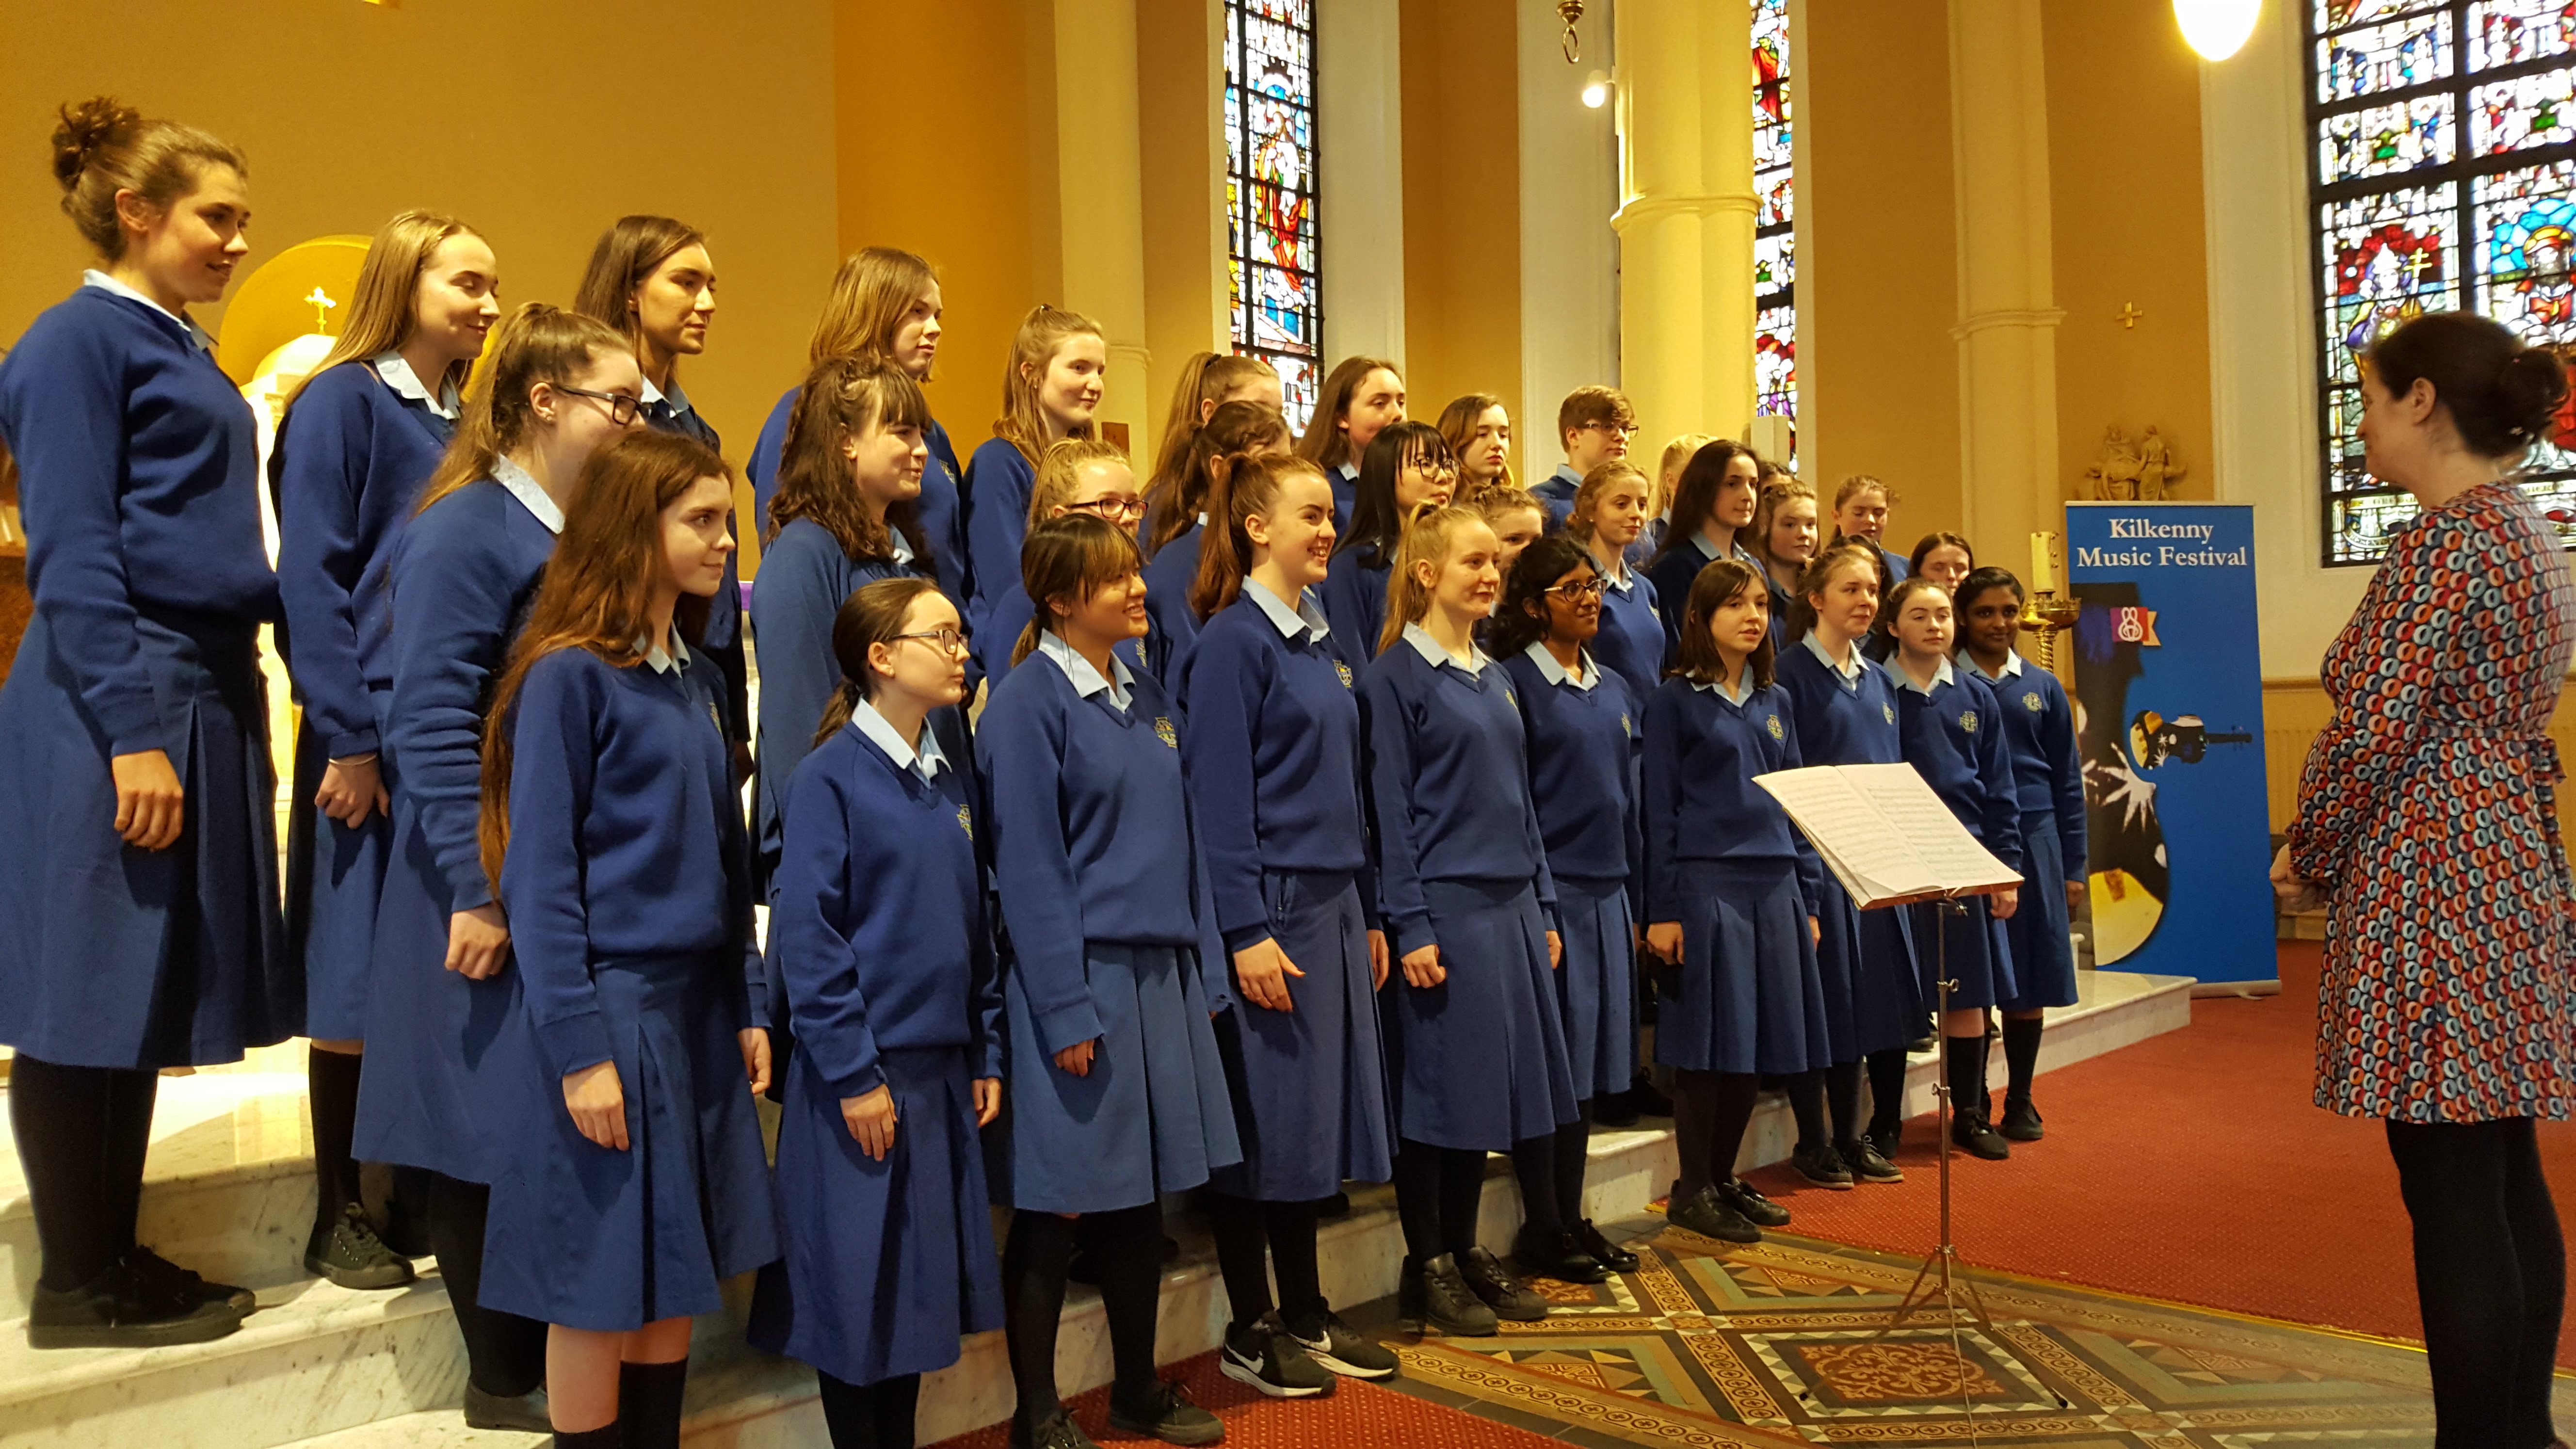 Maryfield Choir at Kilkenny Music Festival 2